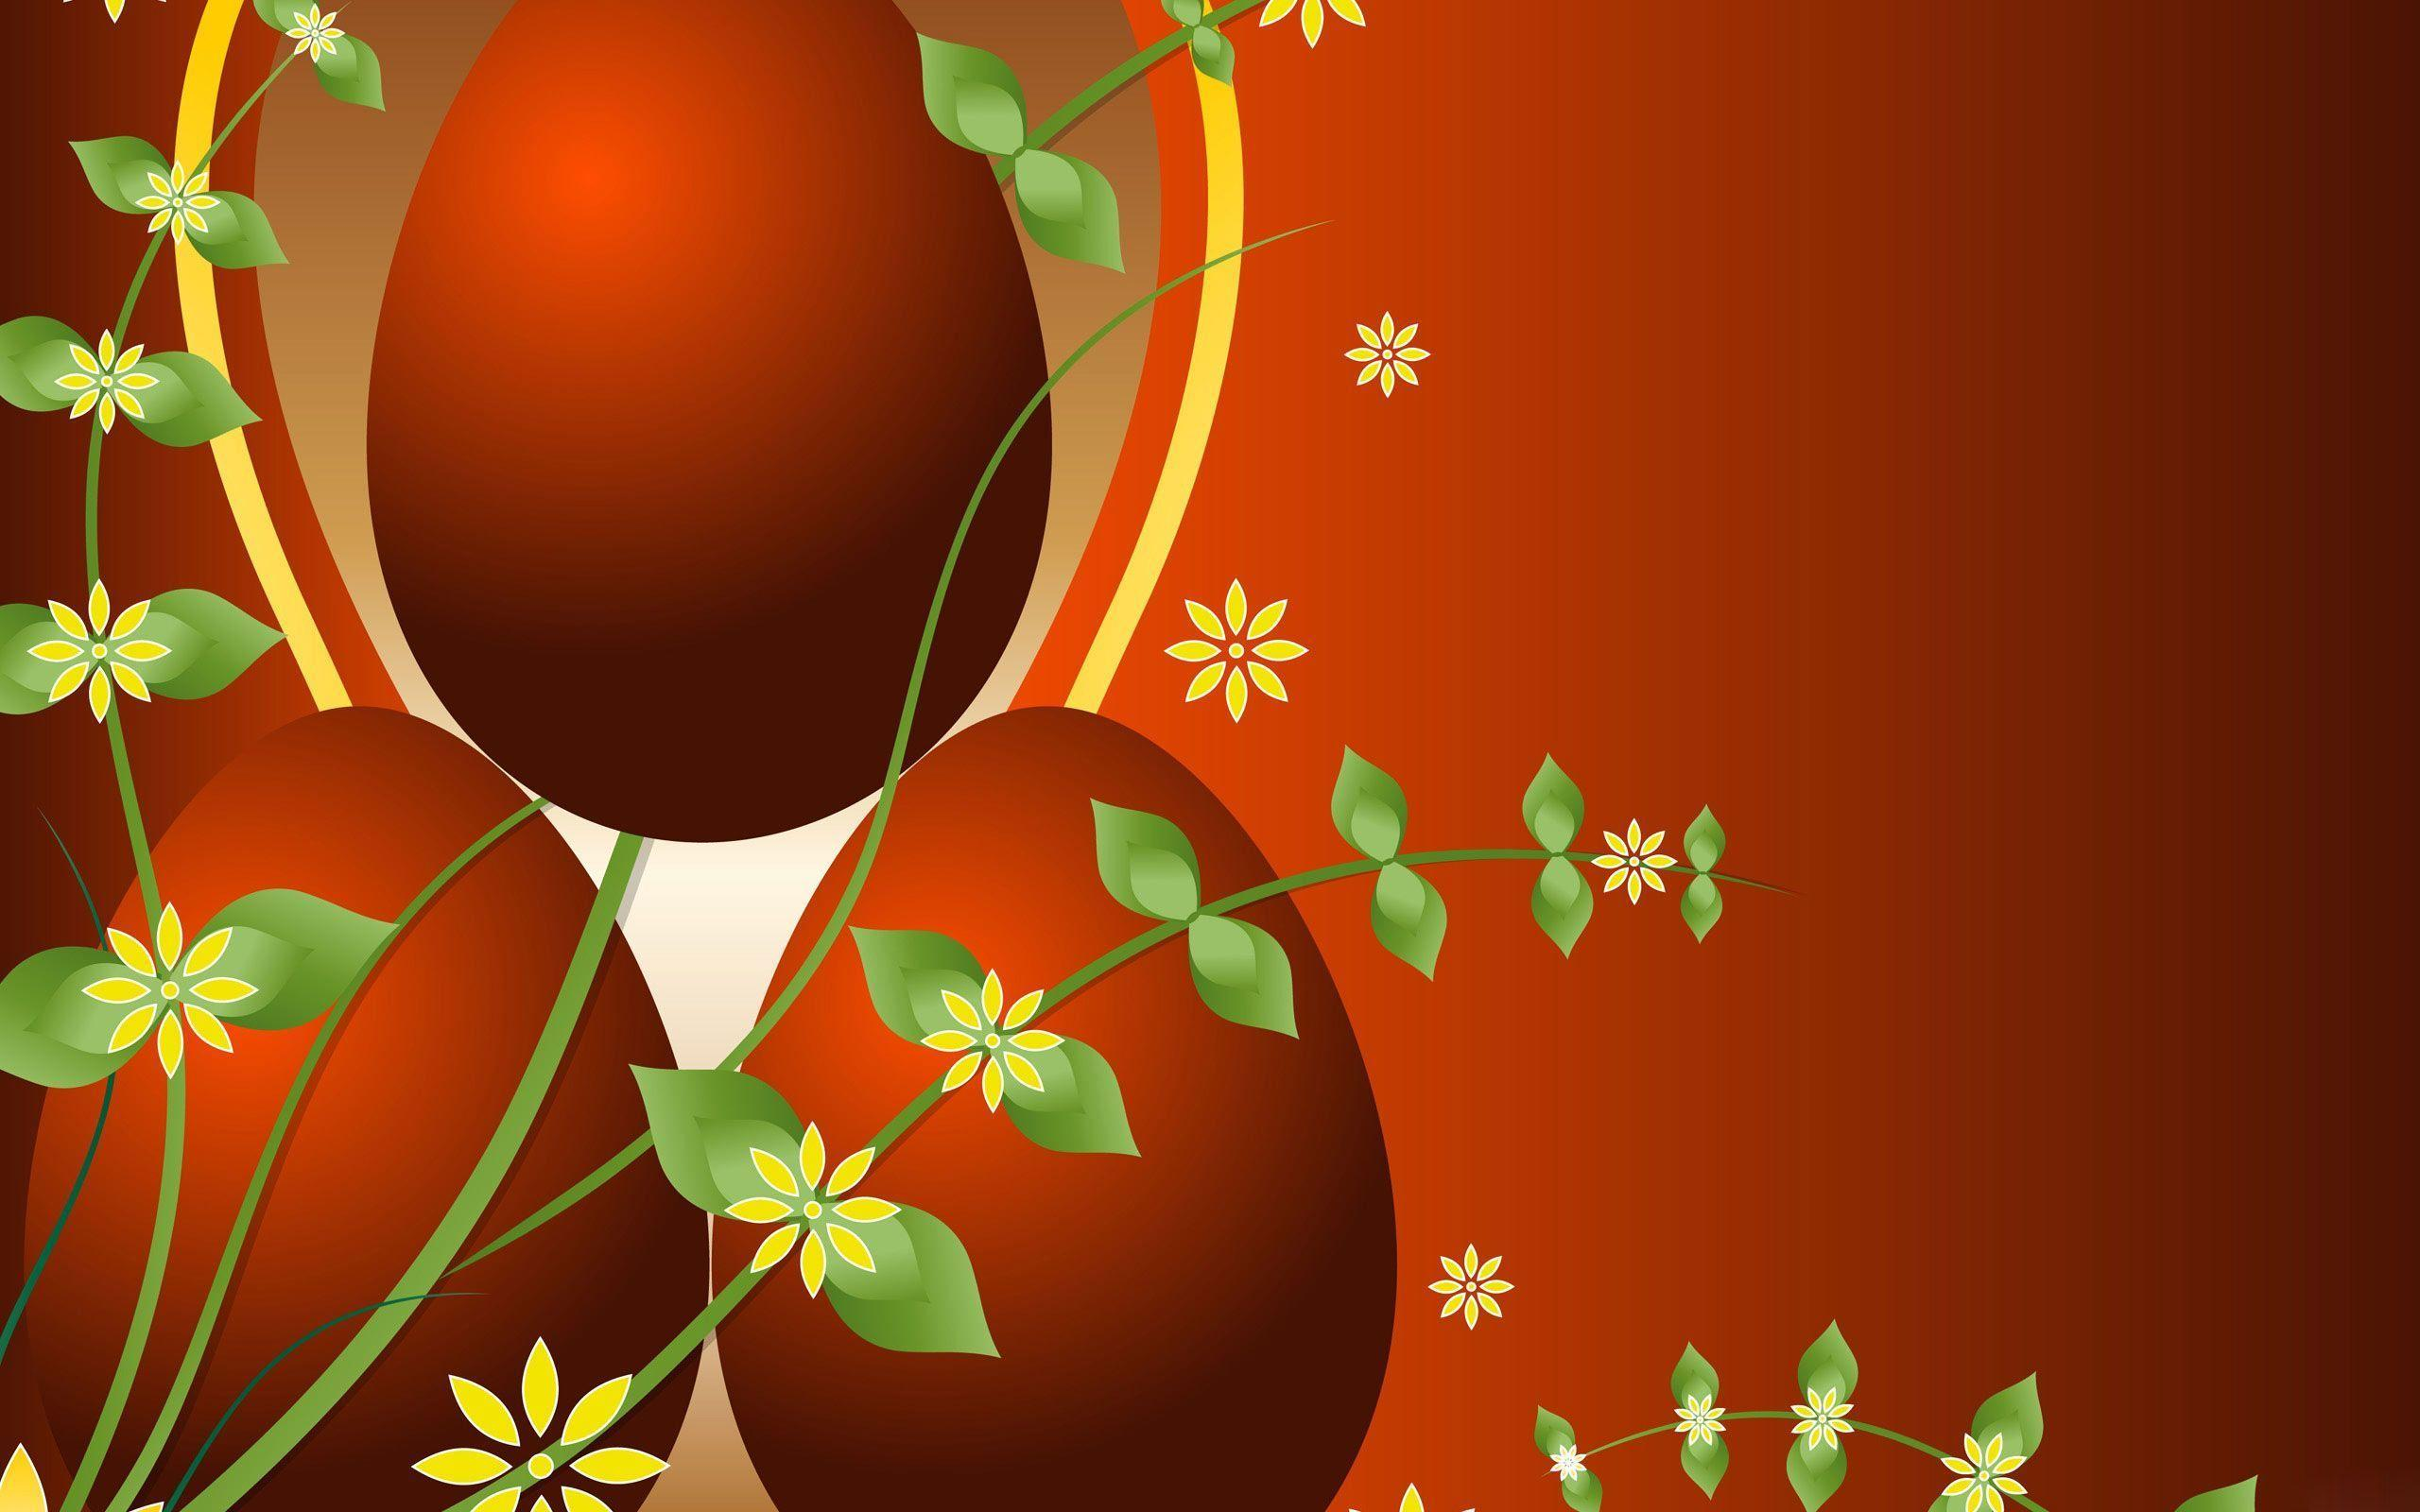 Desktop Wallpapers · Gallery · Miscellaneous · Easter Day or Easter